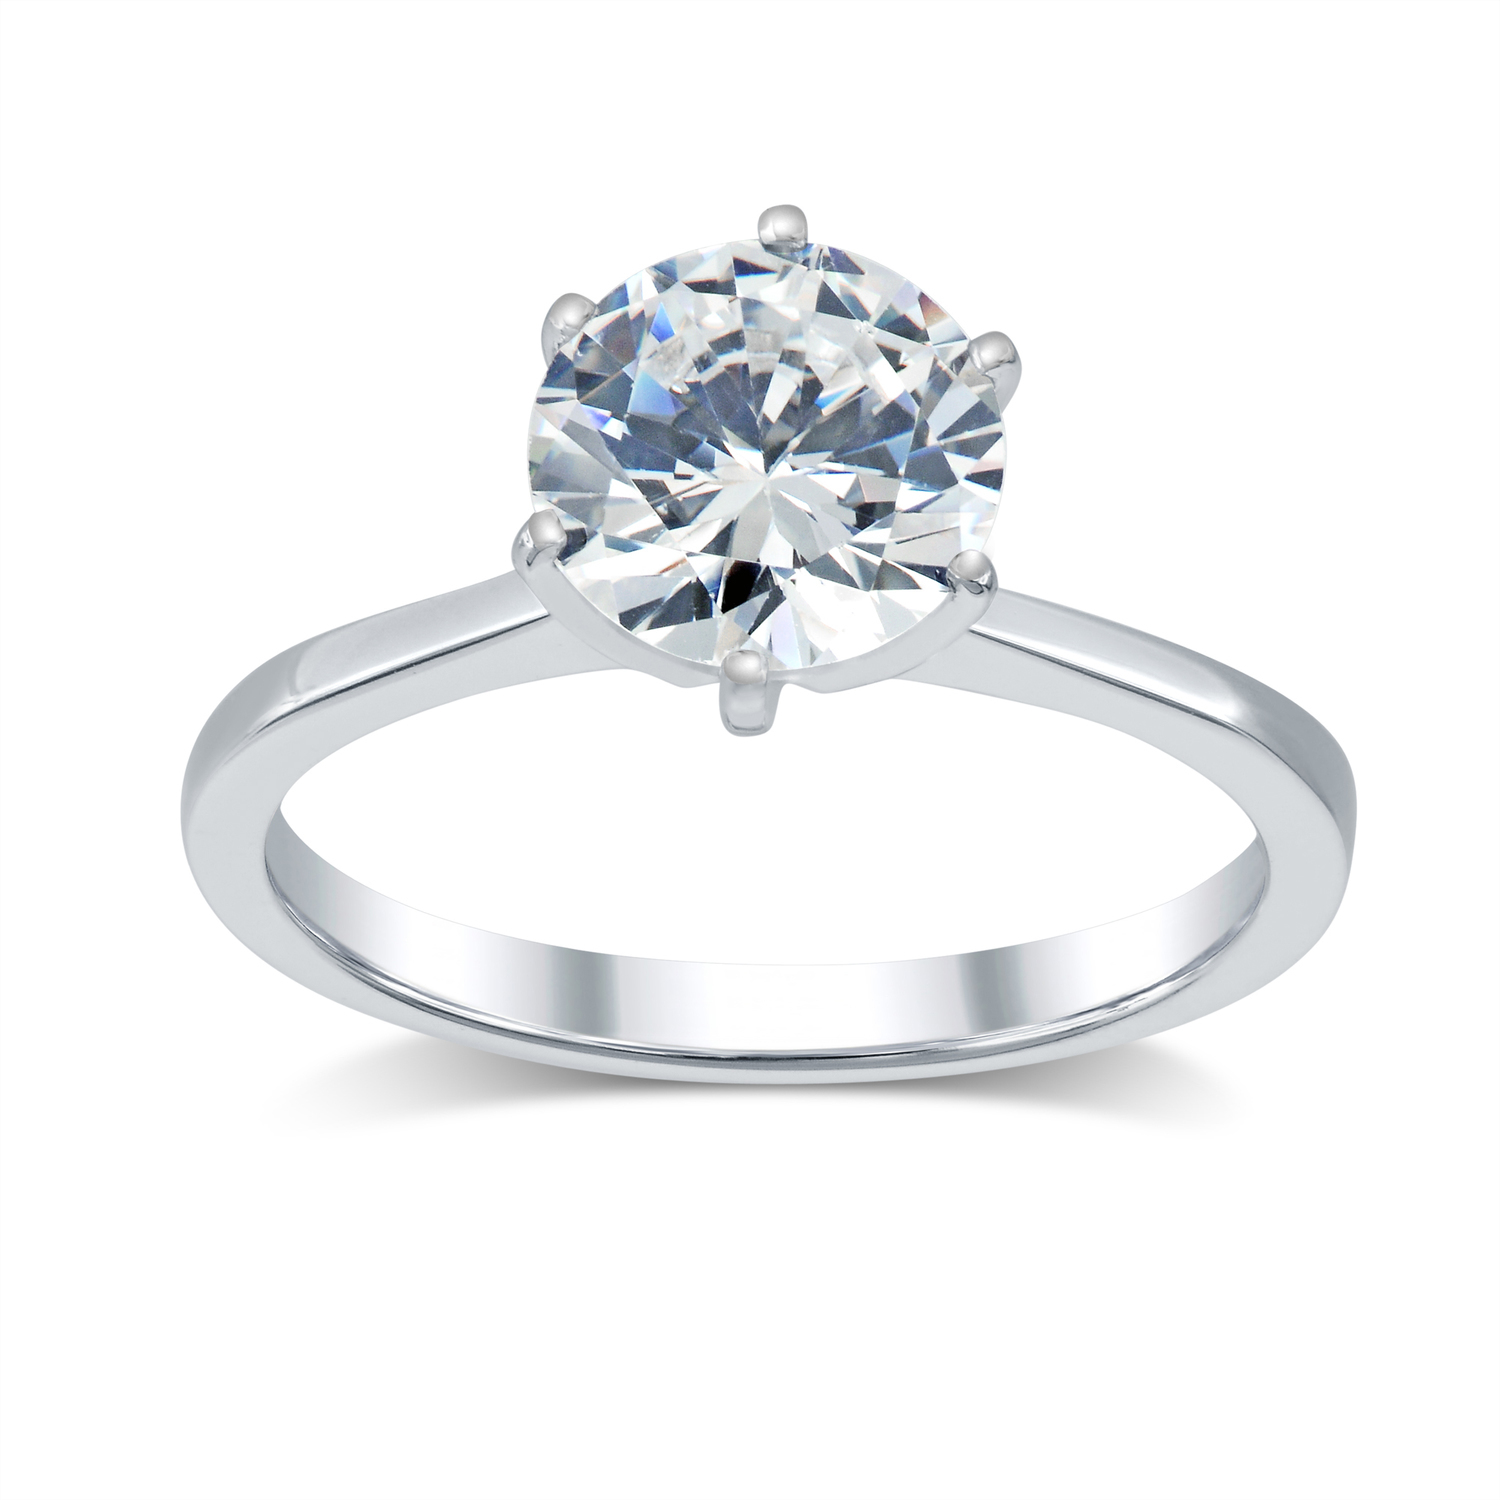 ring rings diamond certified engagement com gia jewelryworld ct catalogue